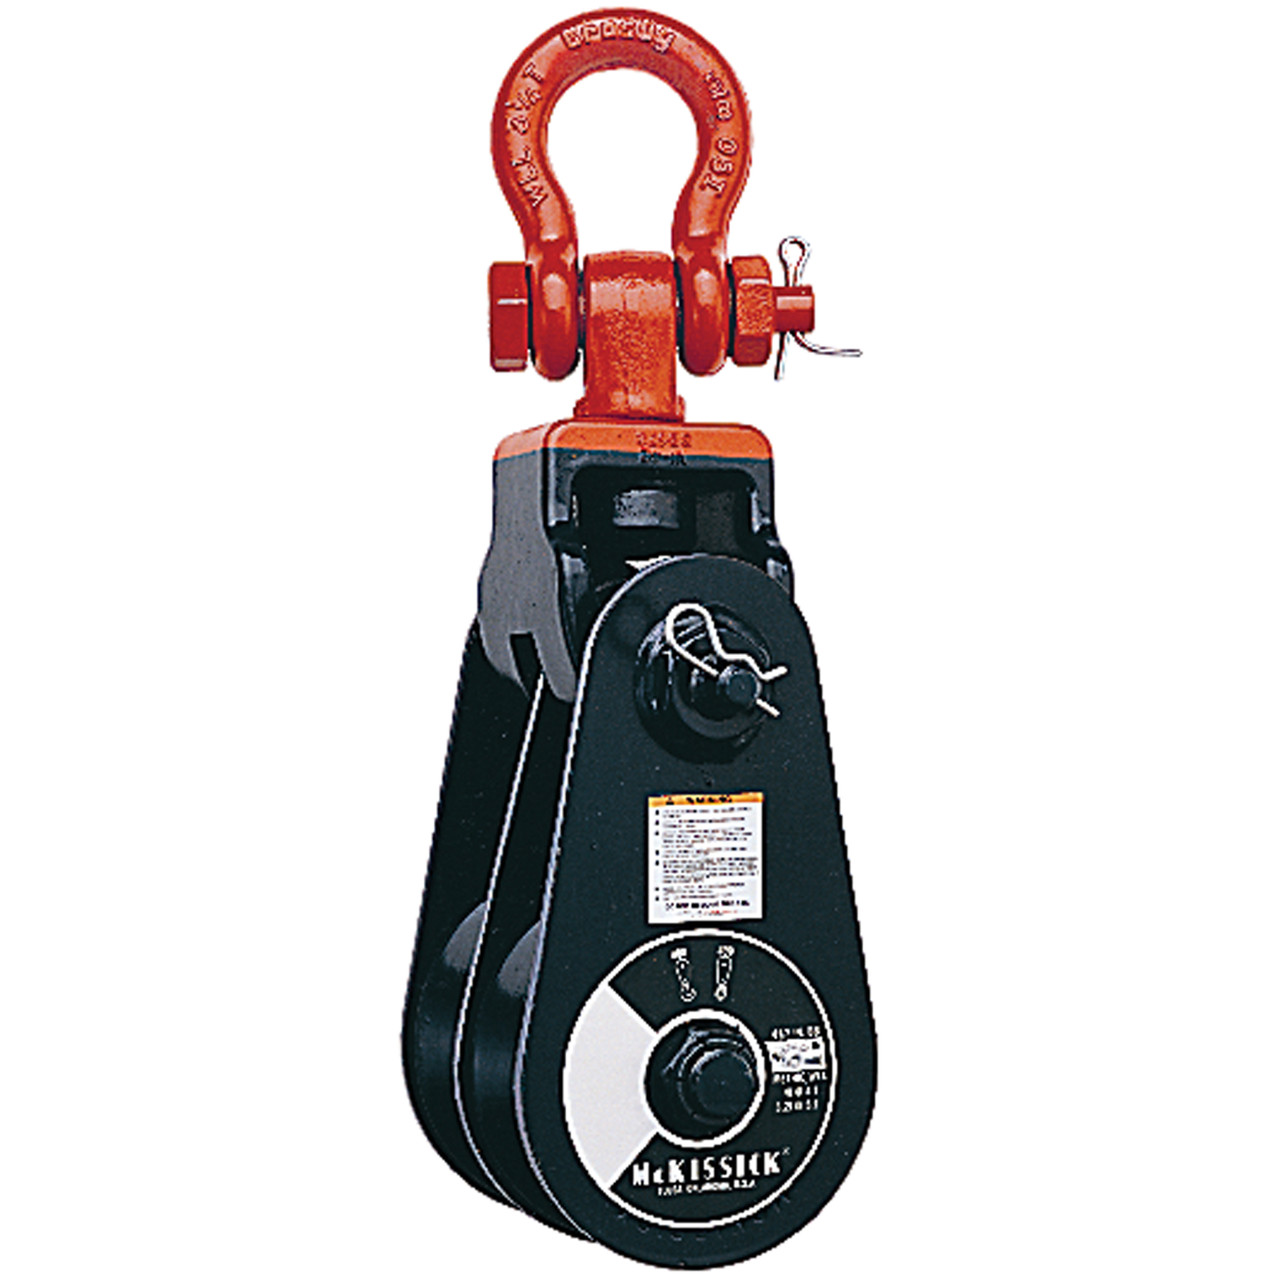 409 Double-Sheave Light Champion Snatch Block With Shackle